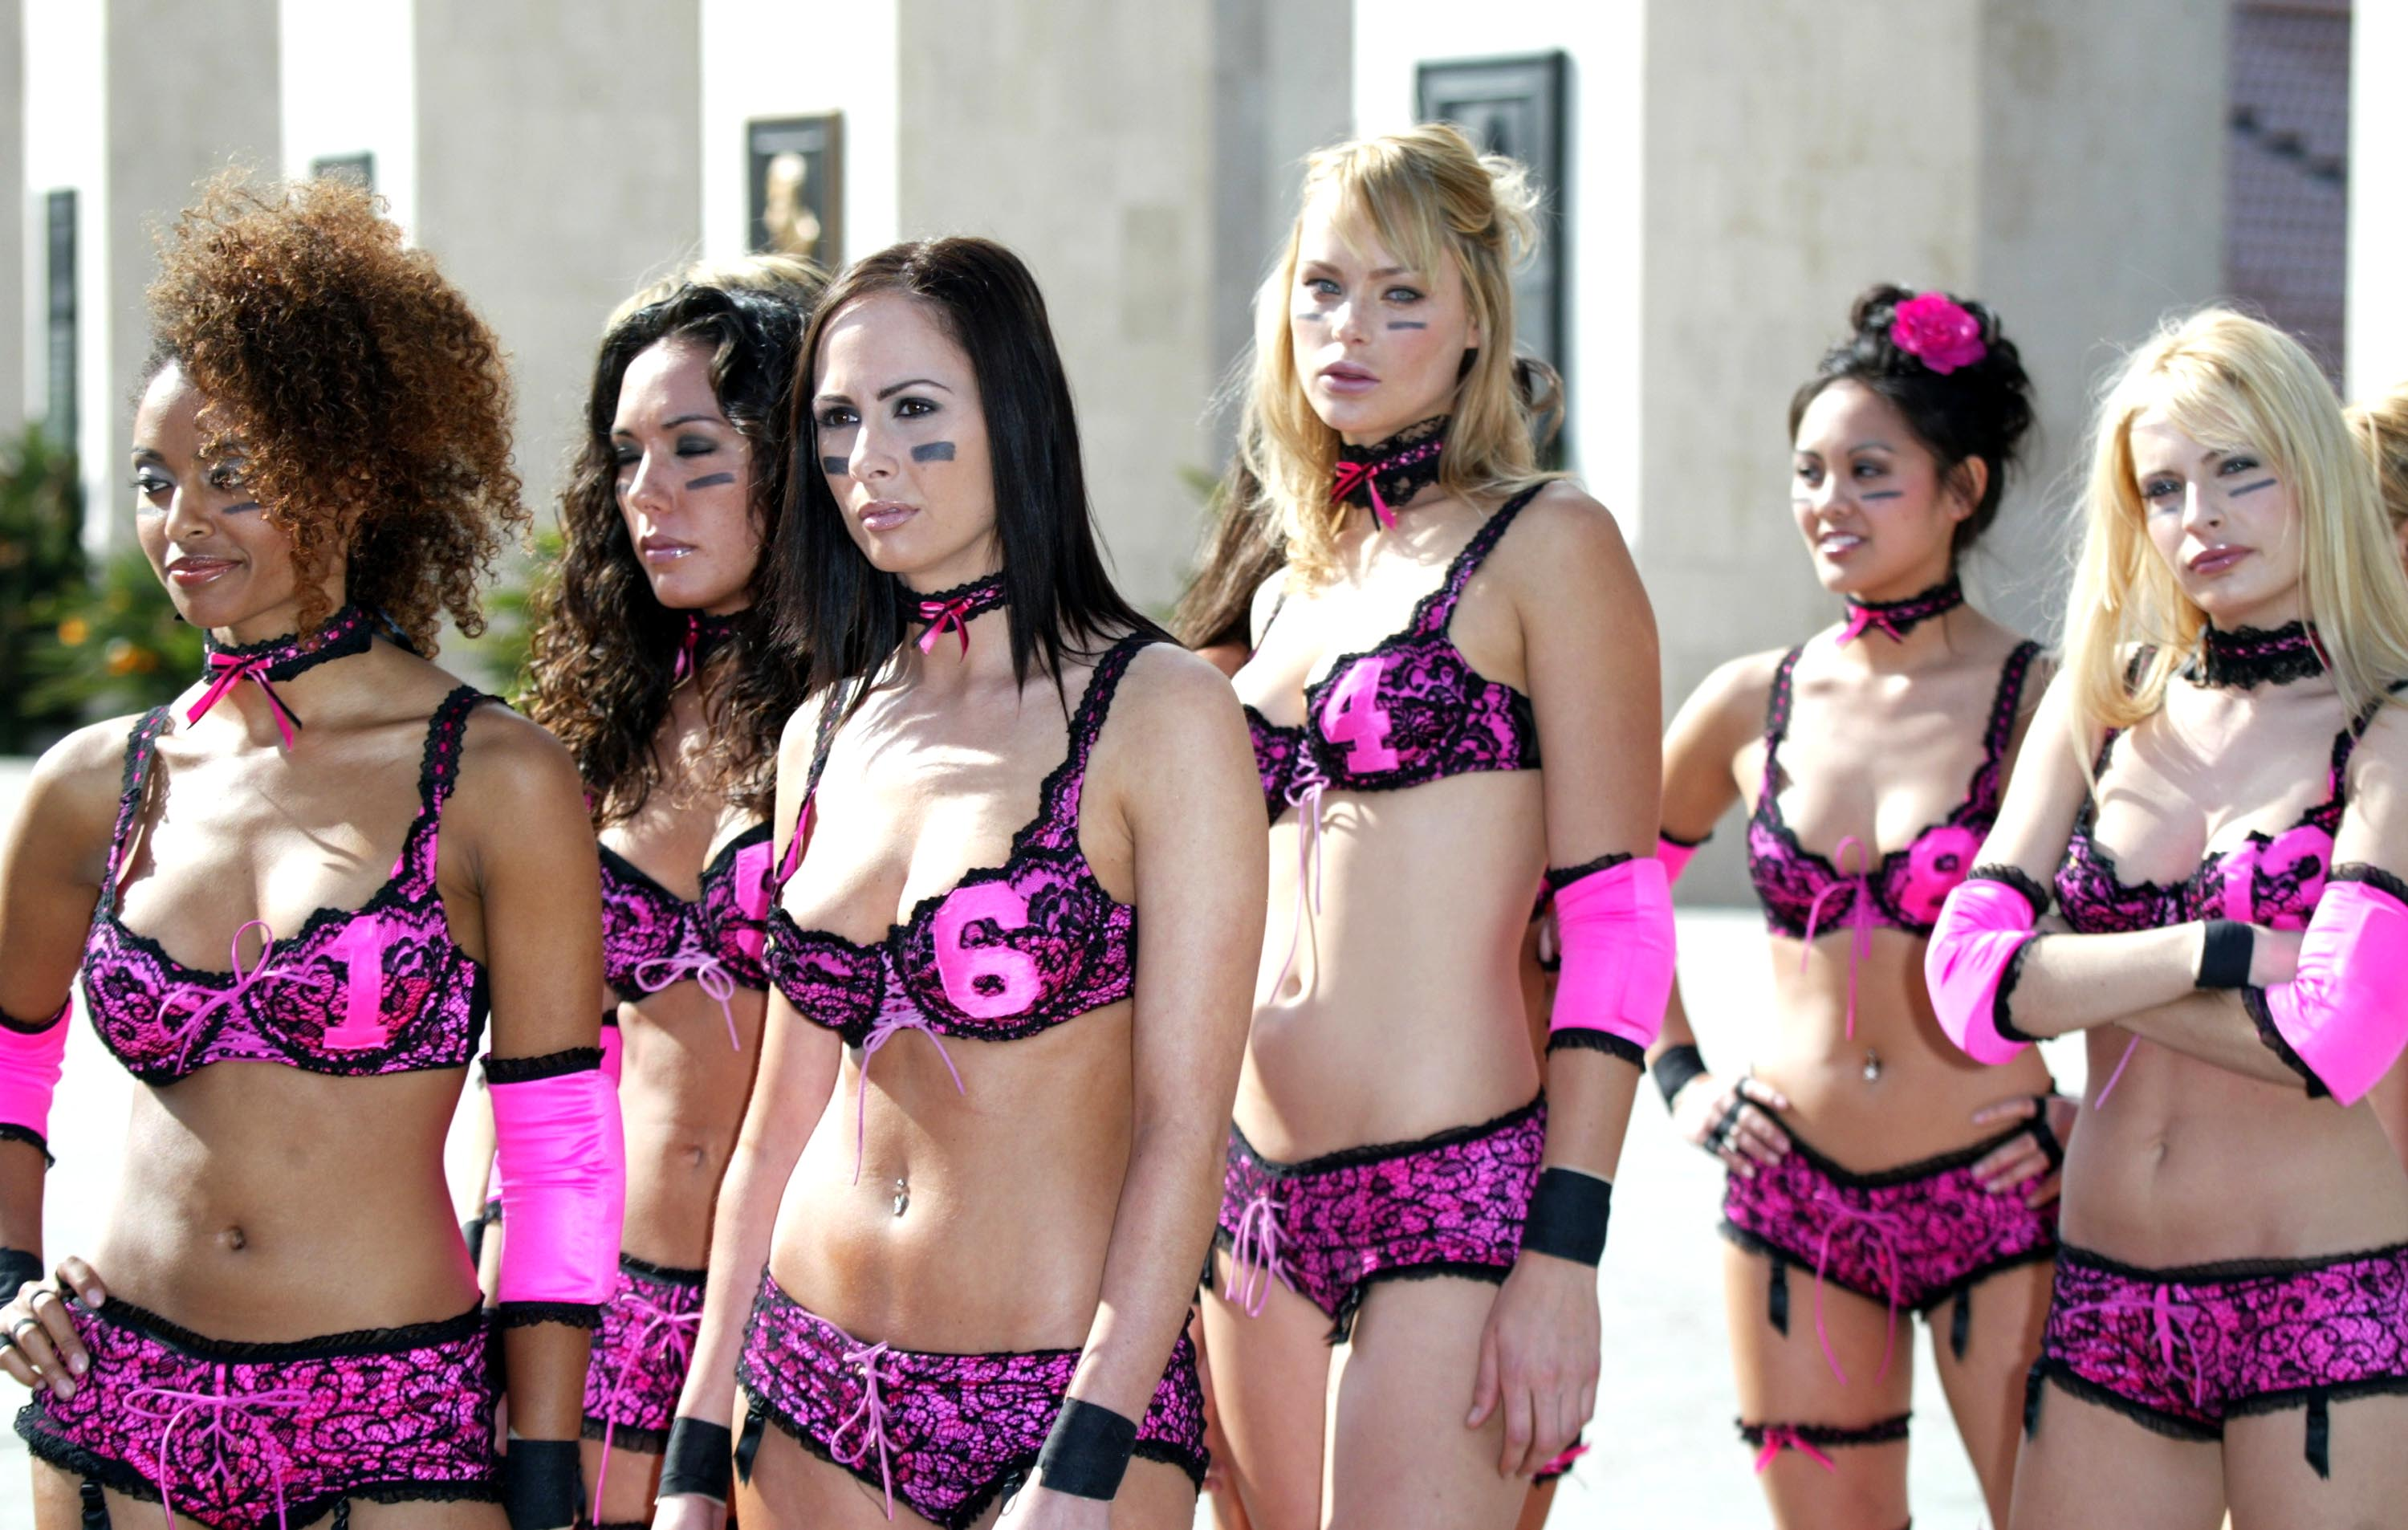 LOS ANGELES- JANUARY 26:  Team Euphoria arrive for  a news conference for the 2004 Lingerie Bowl at the Los Angeles Coliseum, on January 26, 2004 in Los Angeles, California.  (Photo by Frazer Harrison/Getty Images for Lingerie Bowl)